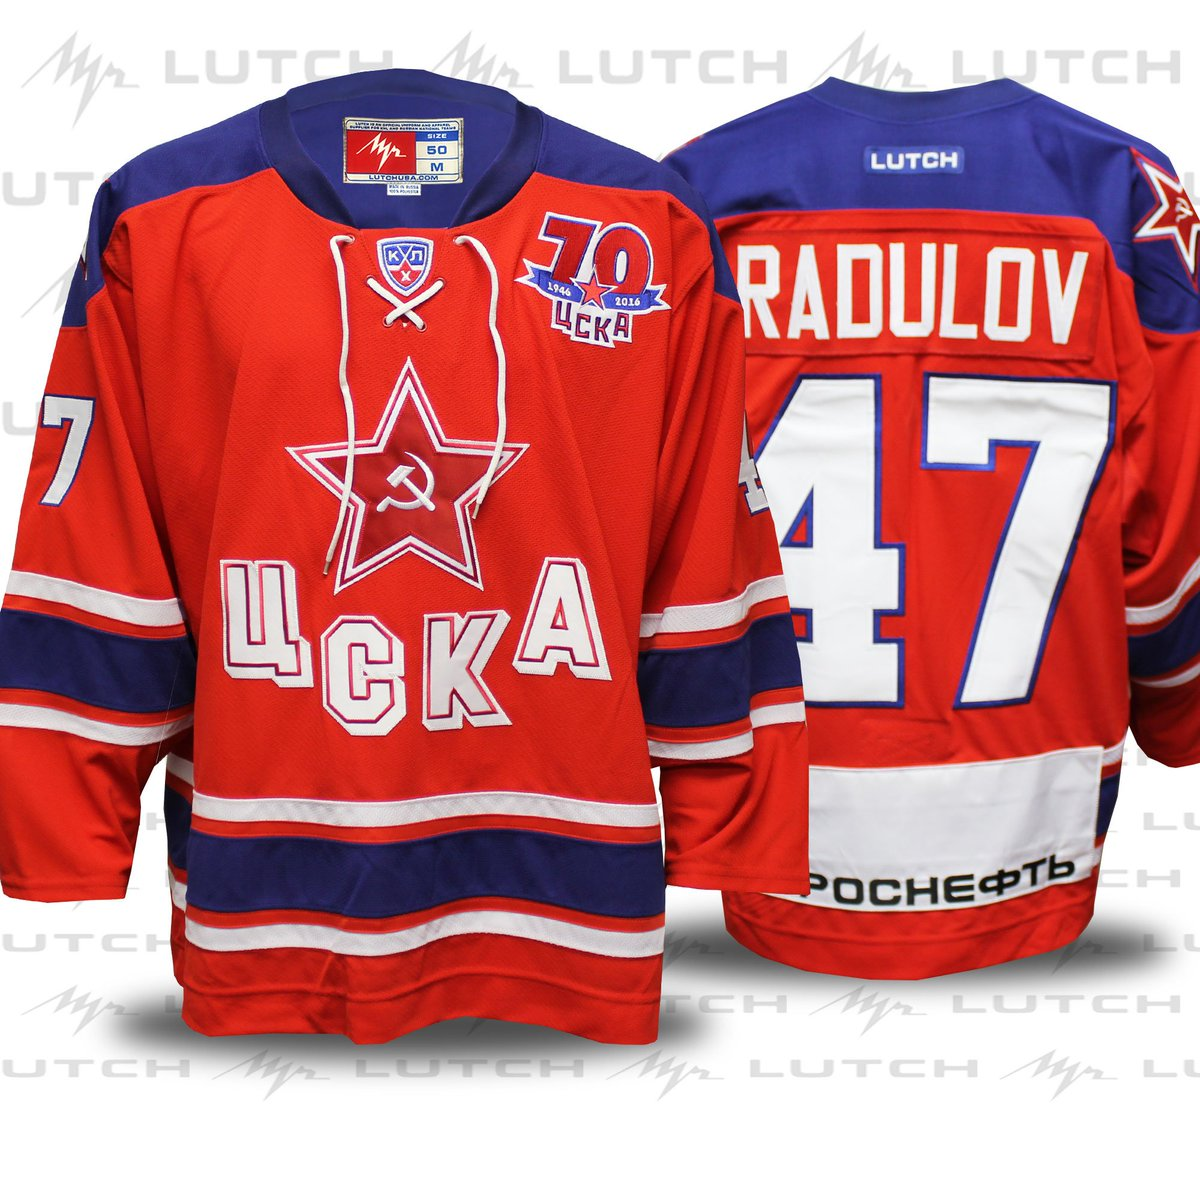 ... jersey is a perfect gift for any fan.  http   www.ebay.com itm Authentic-KHL-Radulov-47-2015-2016-CSKA-Moscow-Retro-Russian-Hockey- Jersey- 222305797866 … ... bbc5d9a4621